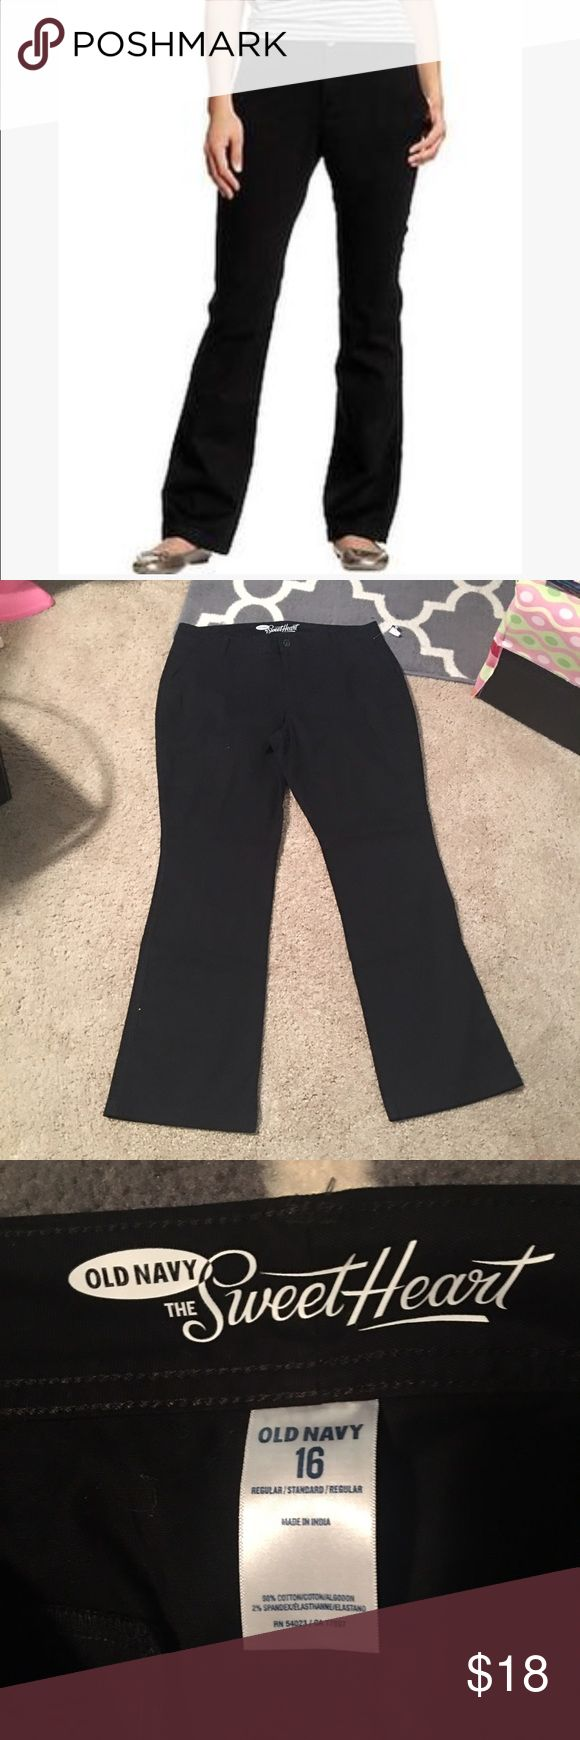 """Old Navy black khaki style """"Sweetheart"""" fit sz: 16 Brand new with tags Old Navy the Sweetheart fit sz: 16. Model wearing exact pants! These are brand new with tags 💖 I have two pairs that are exactly alike and same style, both with tags attached. Old Navy Pants Boot Cut & Flare"""